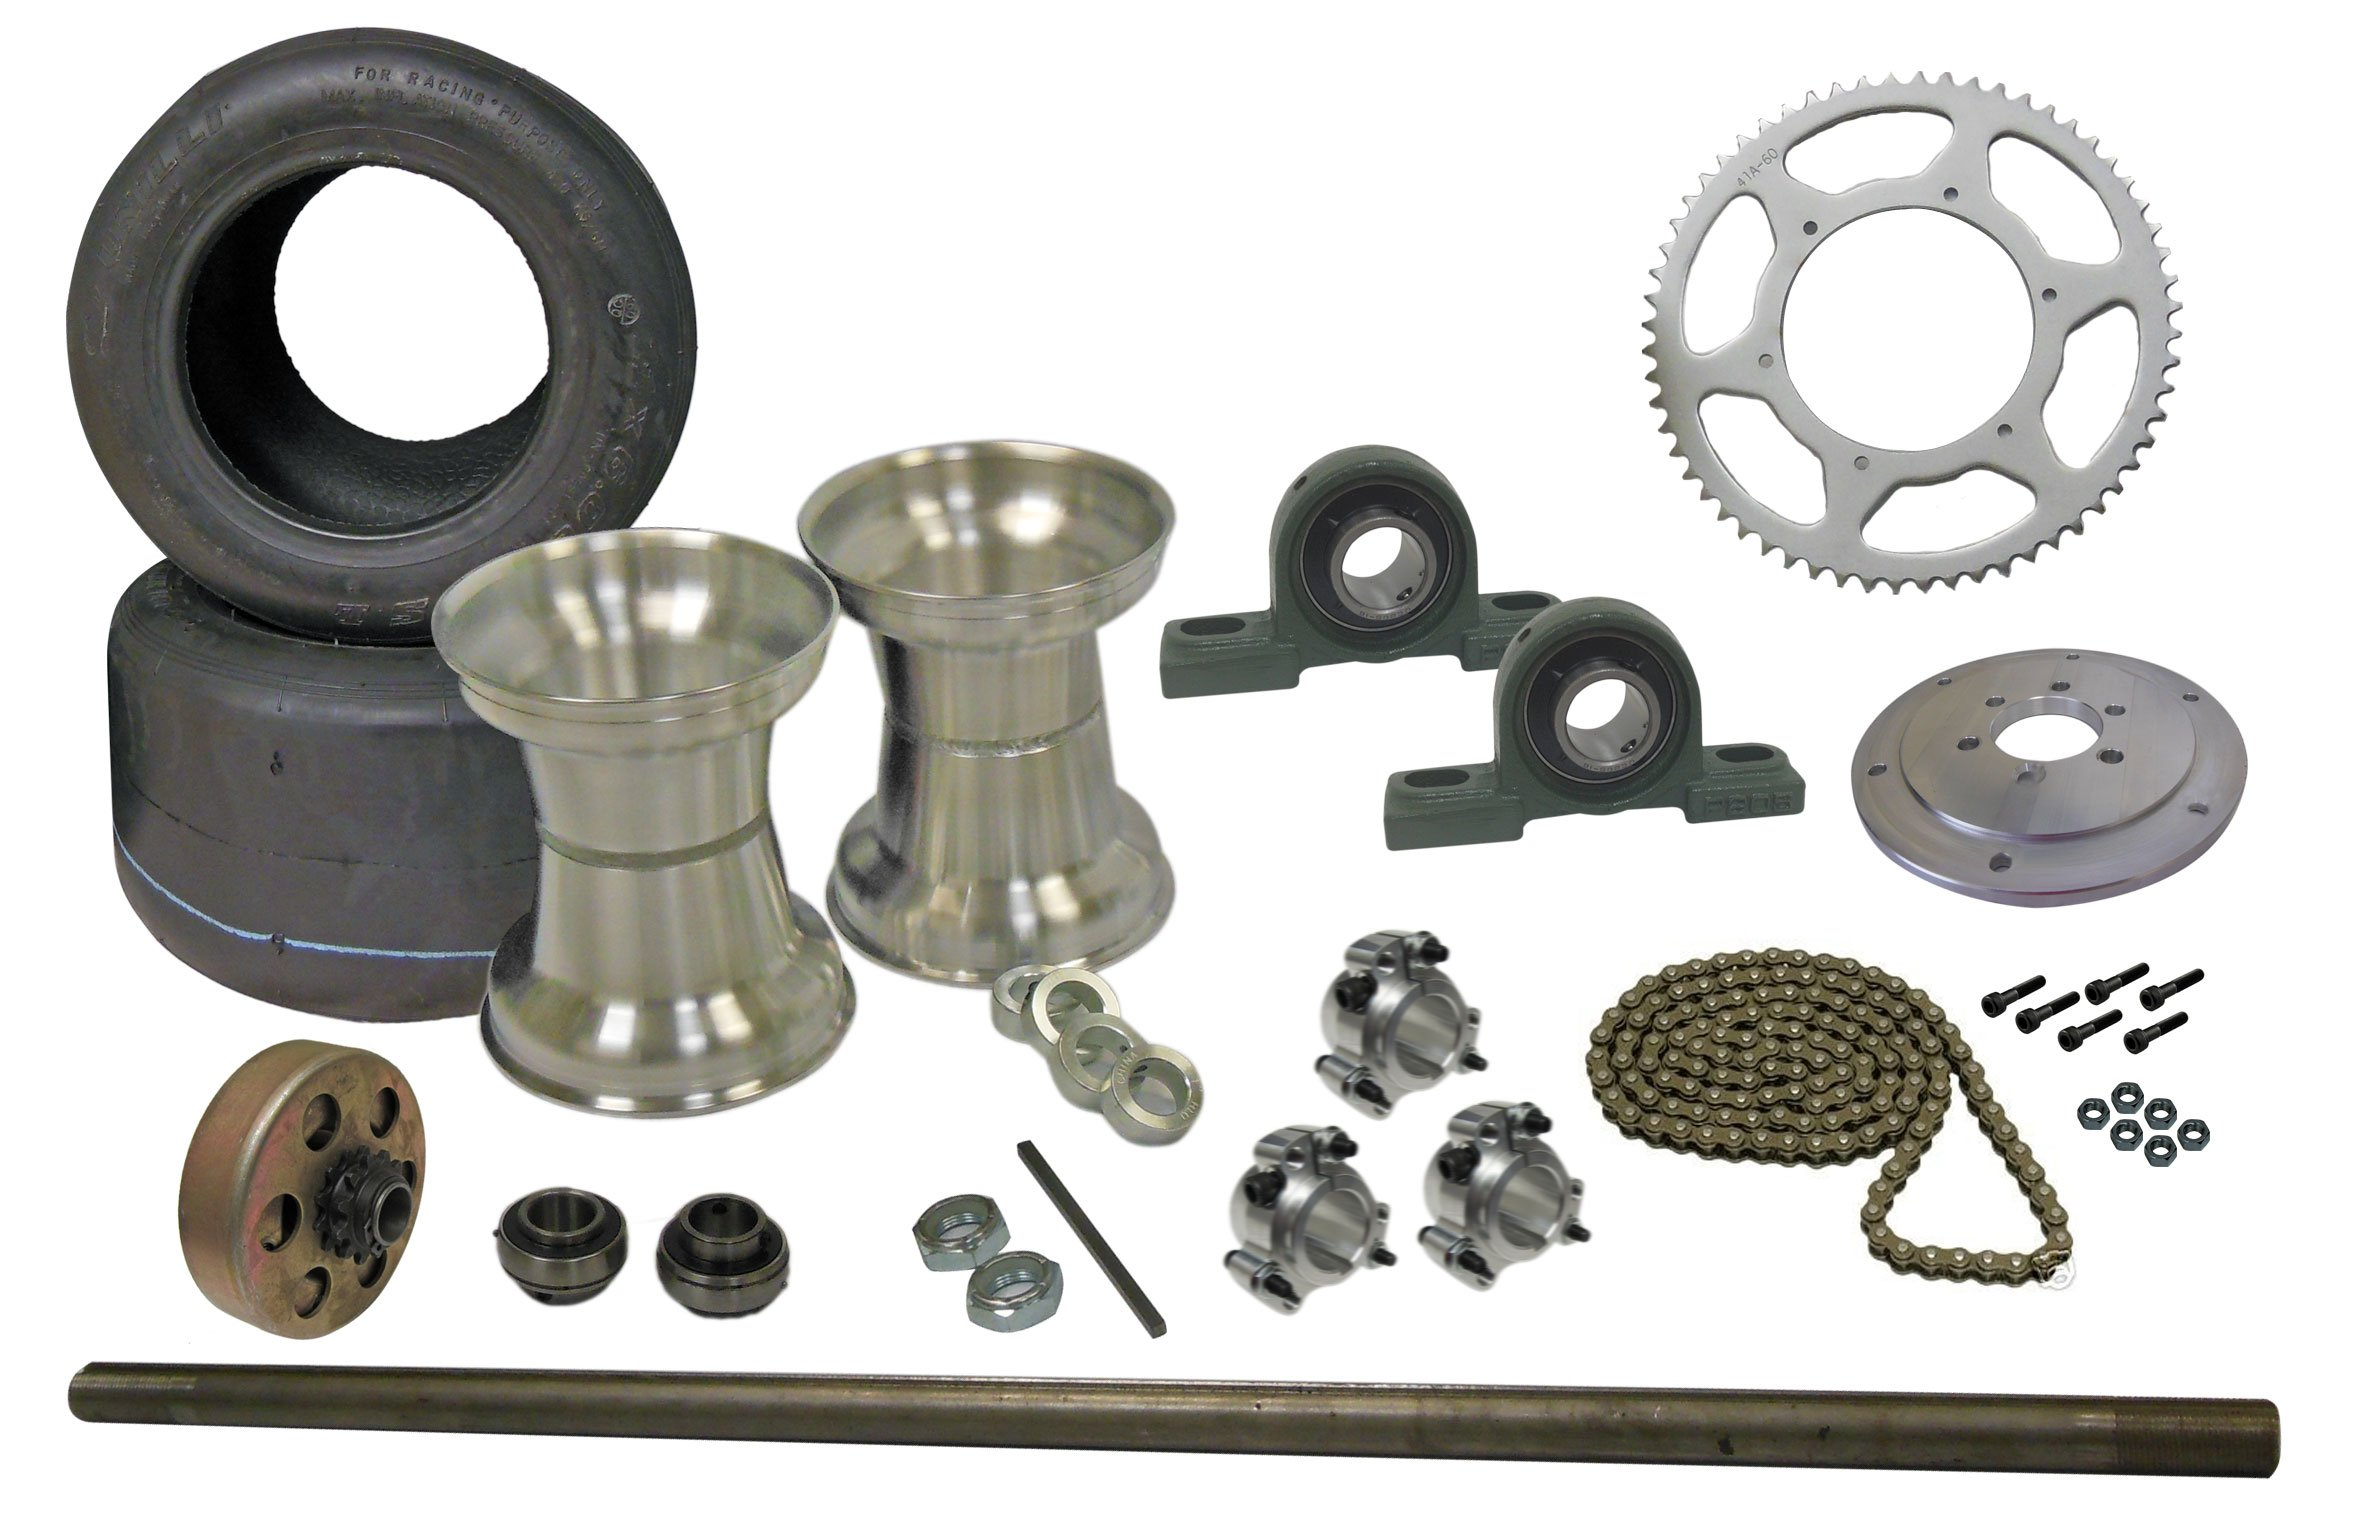 Drift Trike Axle Kit with Tires, Rims & Clutch (#35 Chain), 40'' Axle with Pillow Block Bearings